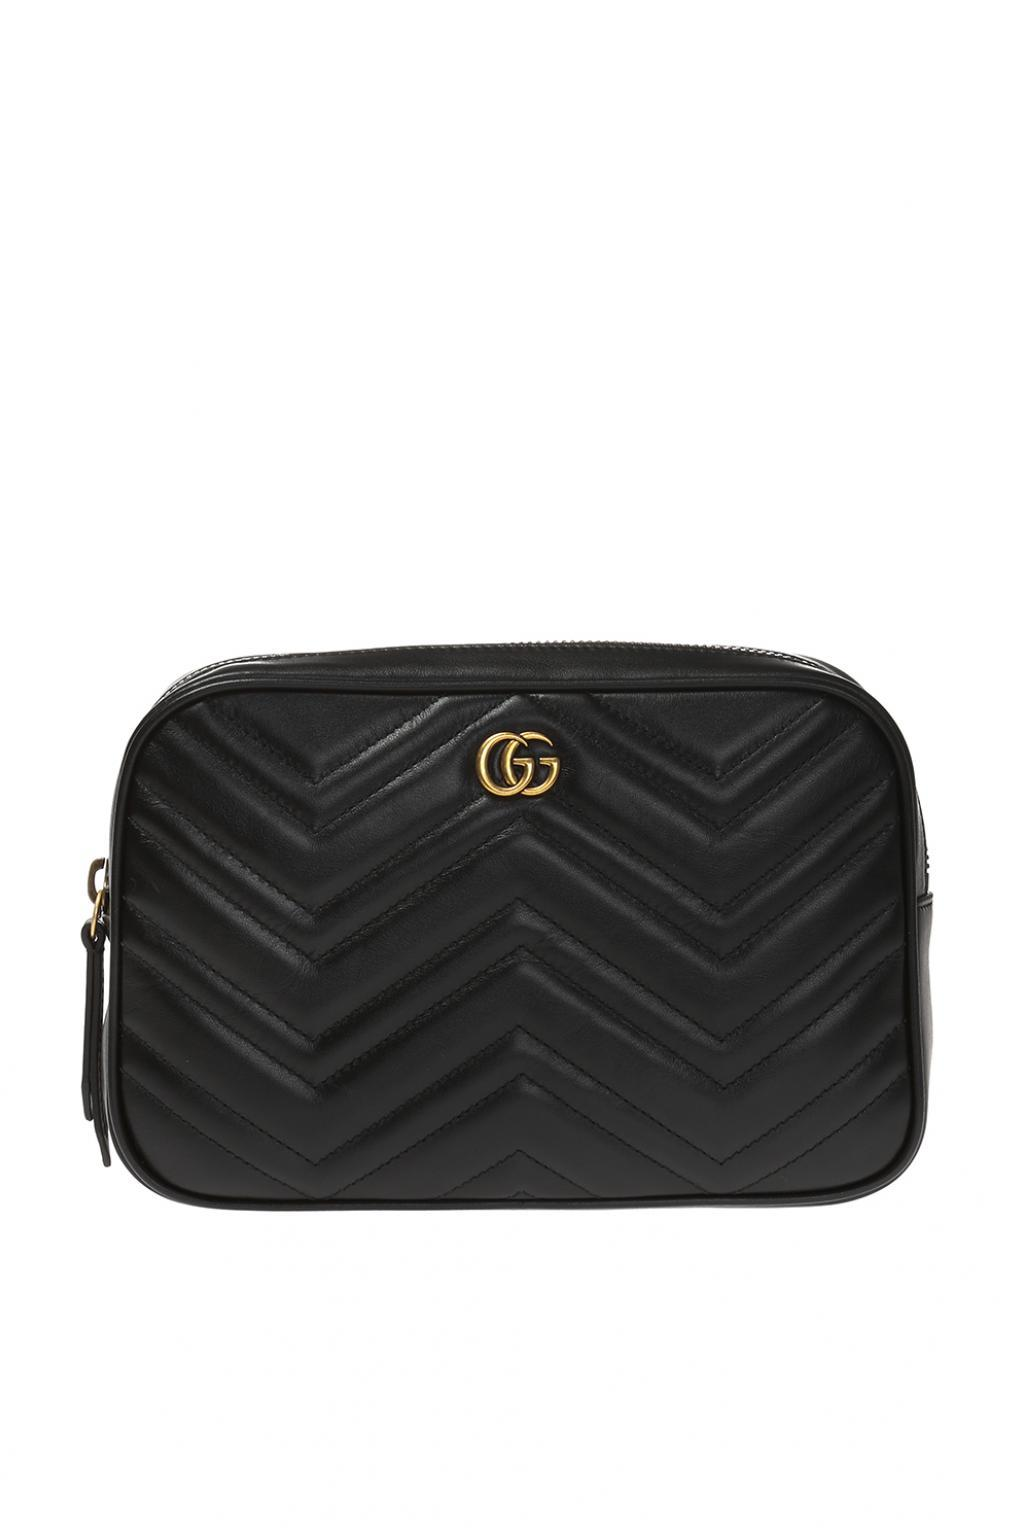 99b9d4b9b83b Gucci 'GG Marmont' Belt Bag With Logo in Black for Men - Lyst